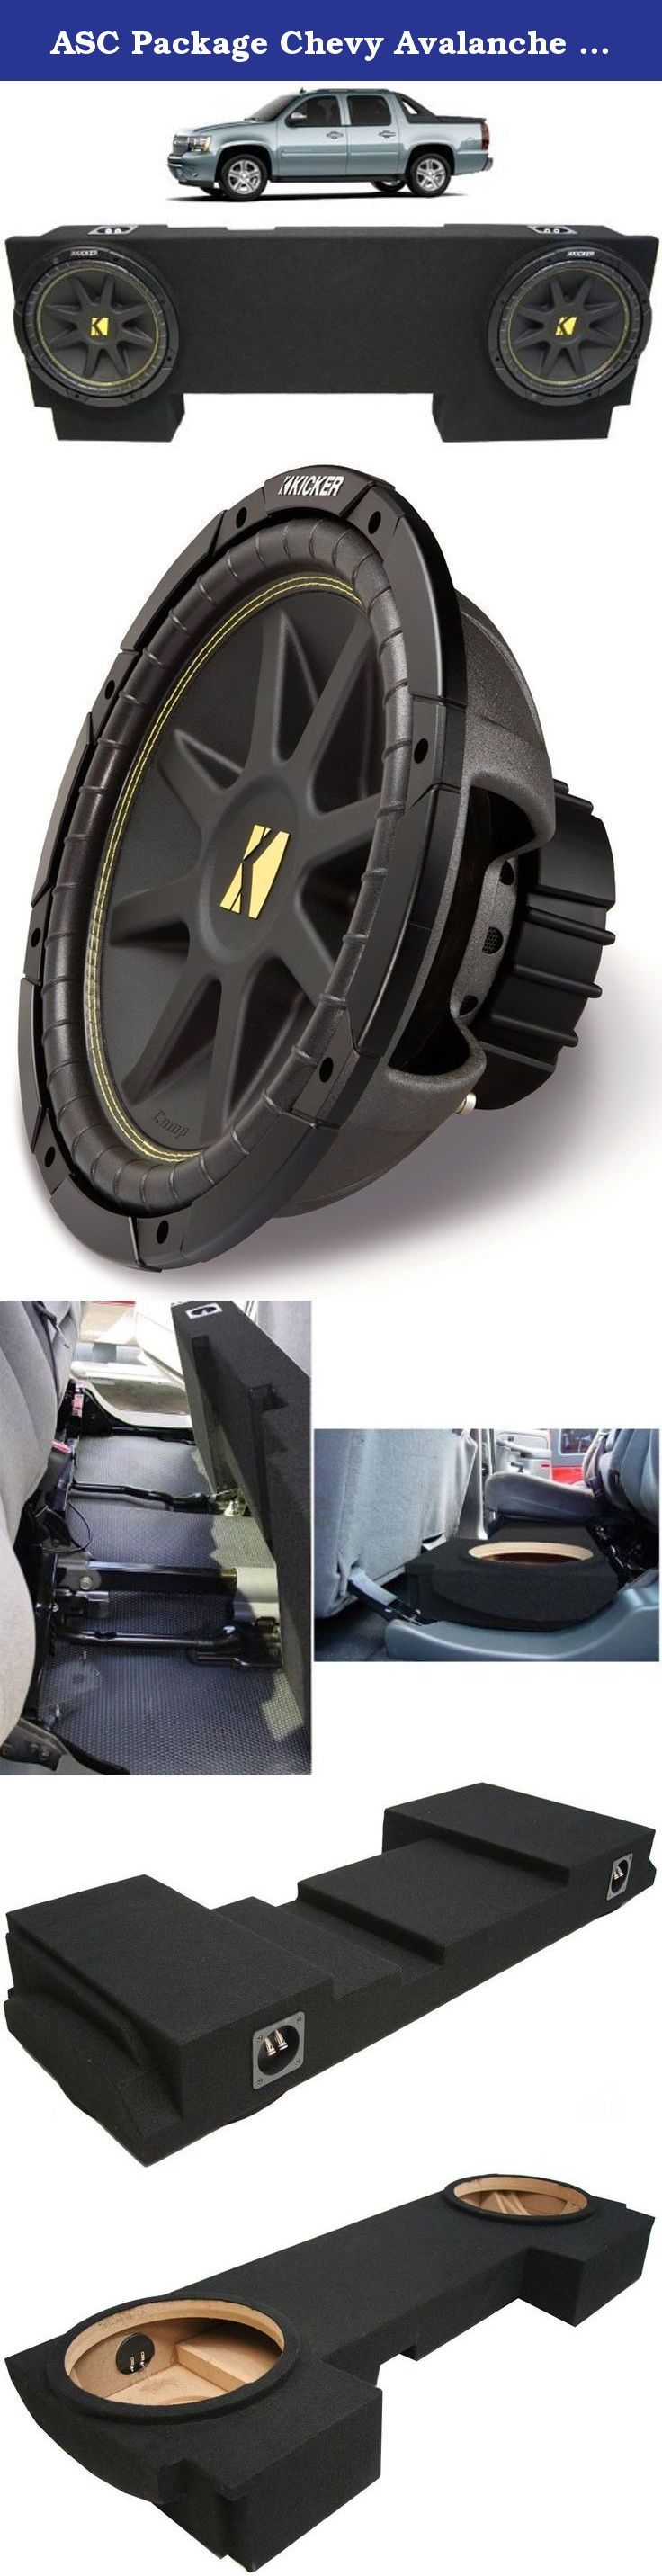 "ASC Package Chevy Avalanche 02-13 Dual 12"" Kicker C12 Subwoofer Under Seat Sub Box Enclosure 600 Watts Peak. This Package Includes: 1 x 2002-2013 Chevy Avalanche Car Audio Custom Dual 12"" Subwoofer Enclosure Sub Box 2 x Kicker C12 12"" Subwoofer Single 4 Ohm 150 Watts (10C12-4) 2002-2013 Chevy Avalanche Car Audio Custom Dual 12"" Subwoofer Enclosure Sub Box Specifications: Features: 2002-2013 Chevy Avalanche Car Audio Custom Dual 12"" Subwoofer Enclosure Air Space: 0.48 Cubic Feet per Sub..."